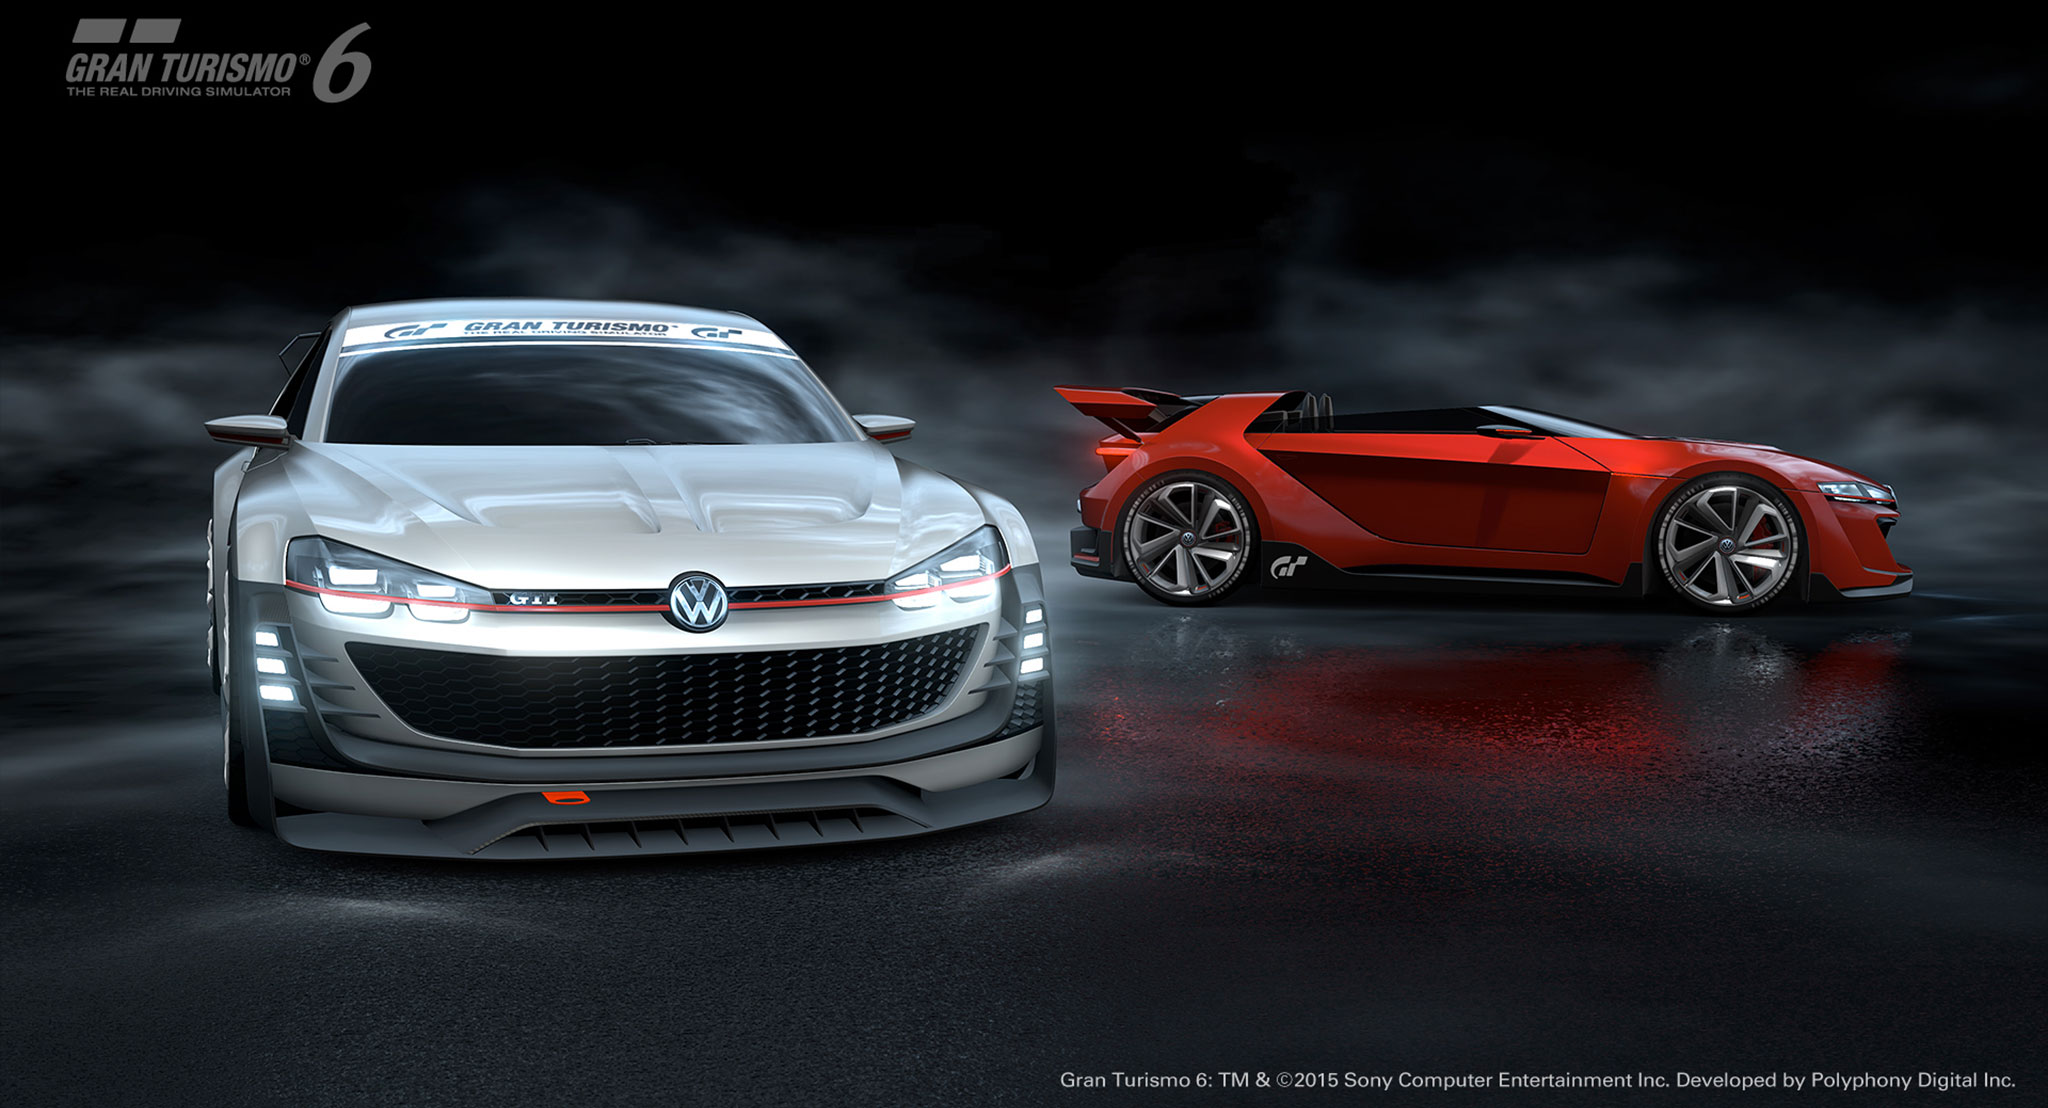 Volkswagen VisionGTI Experience the Gran Turismo